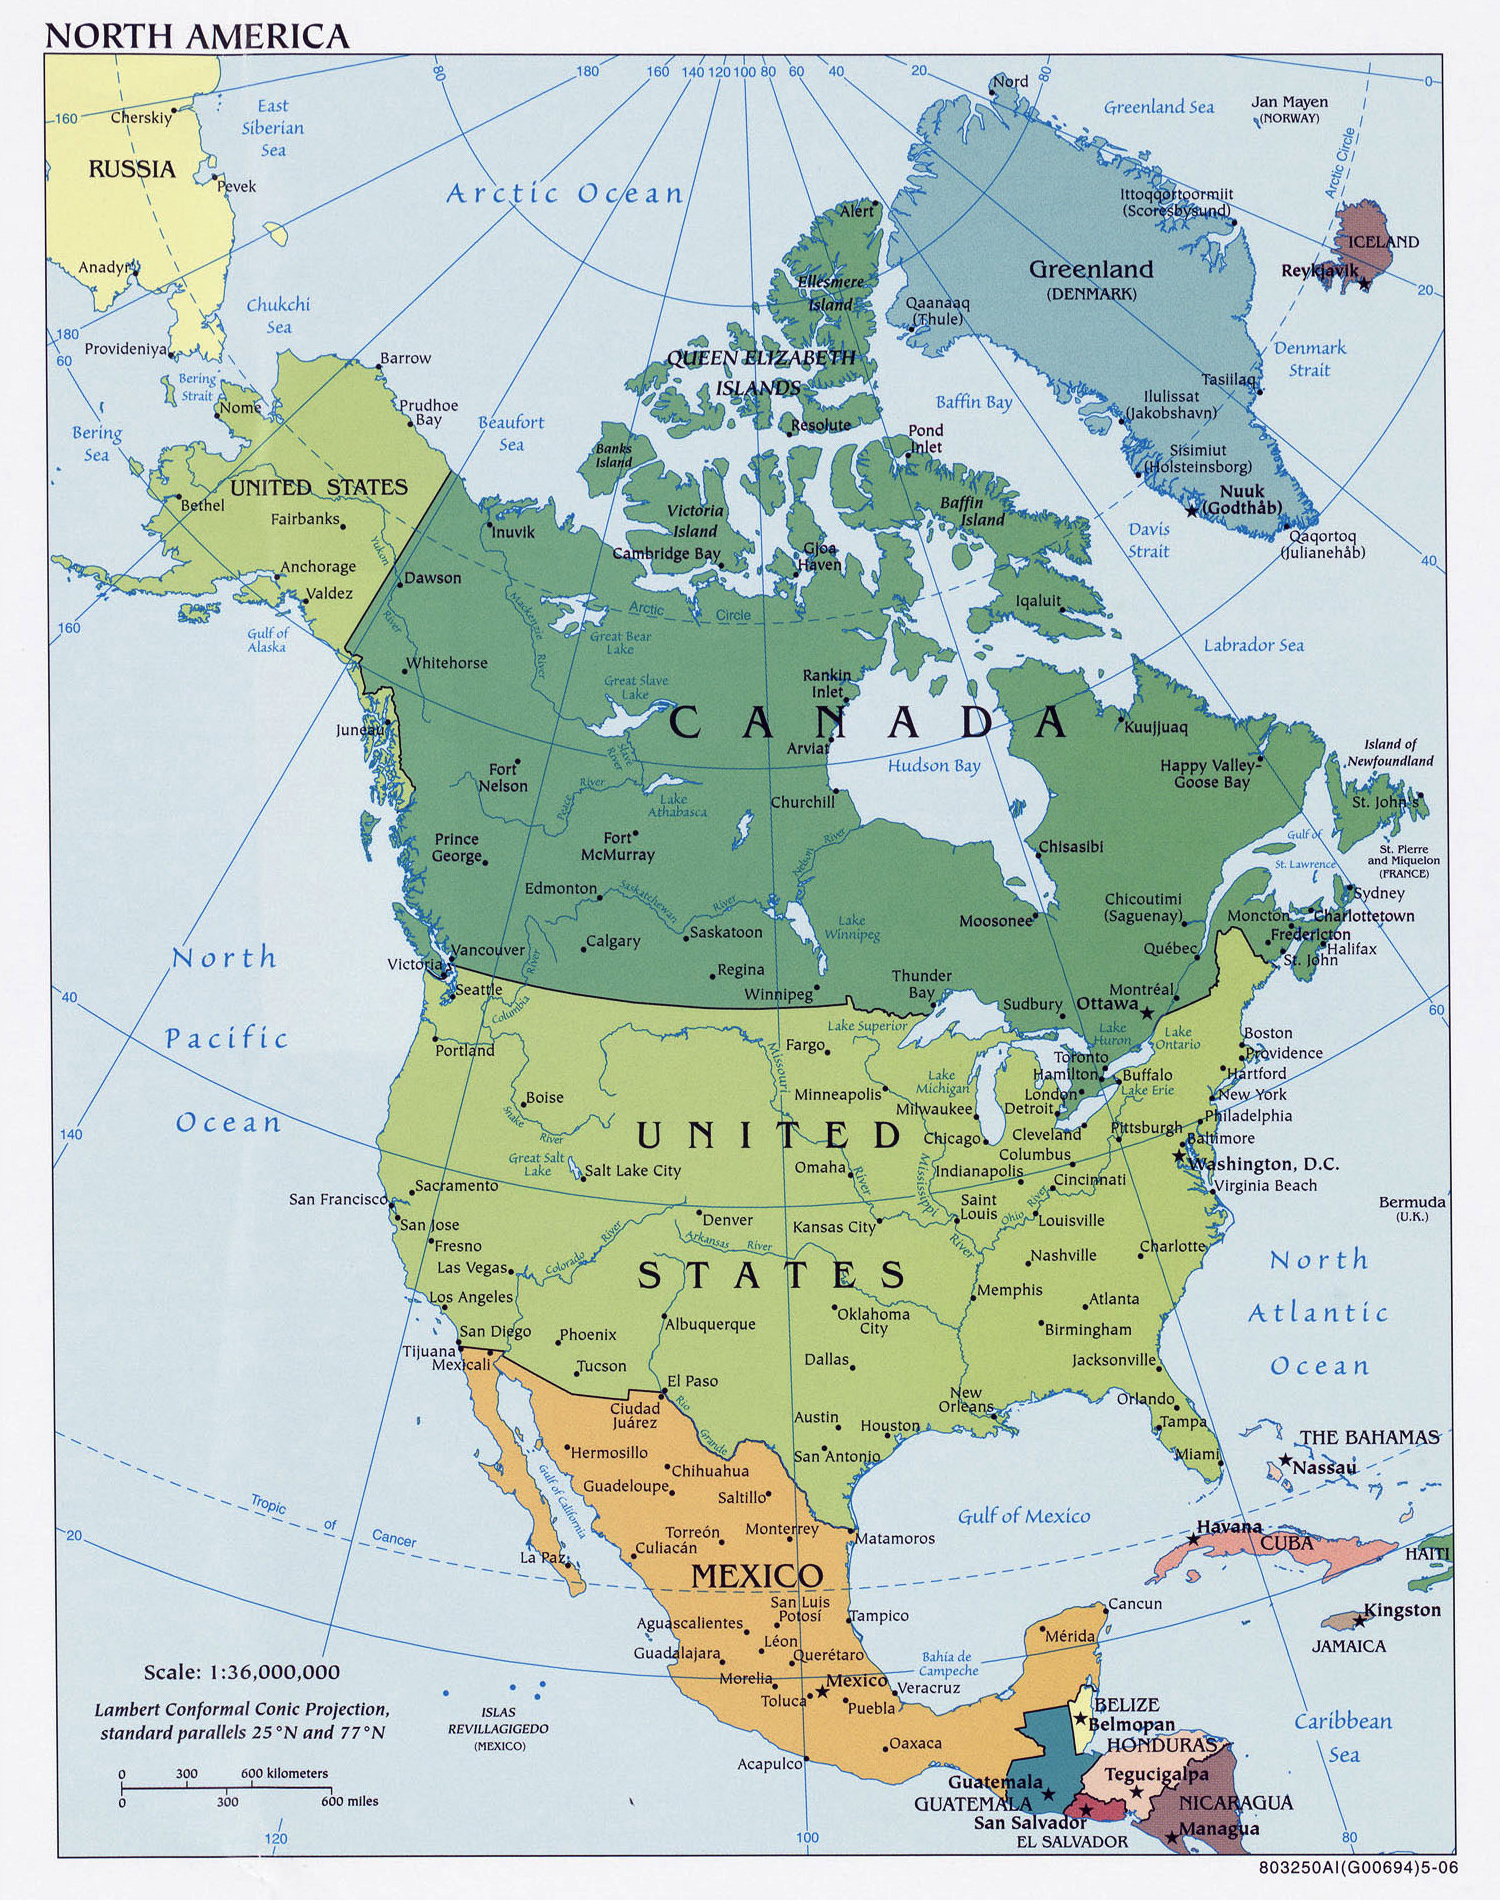 north america detailed political map